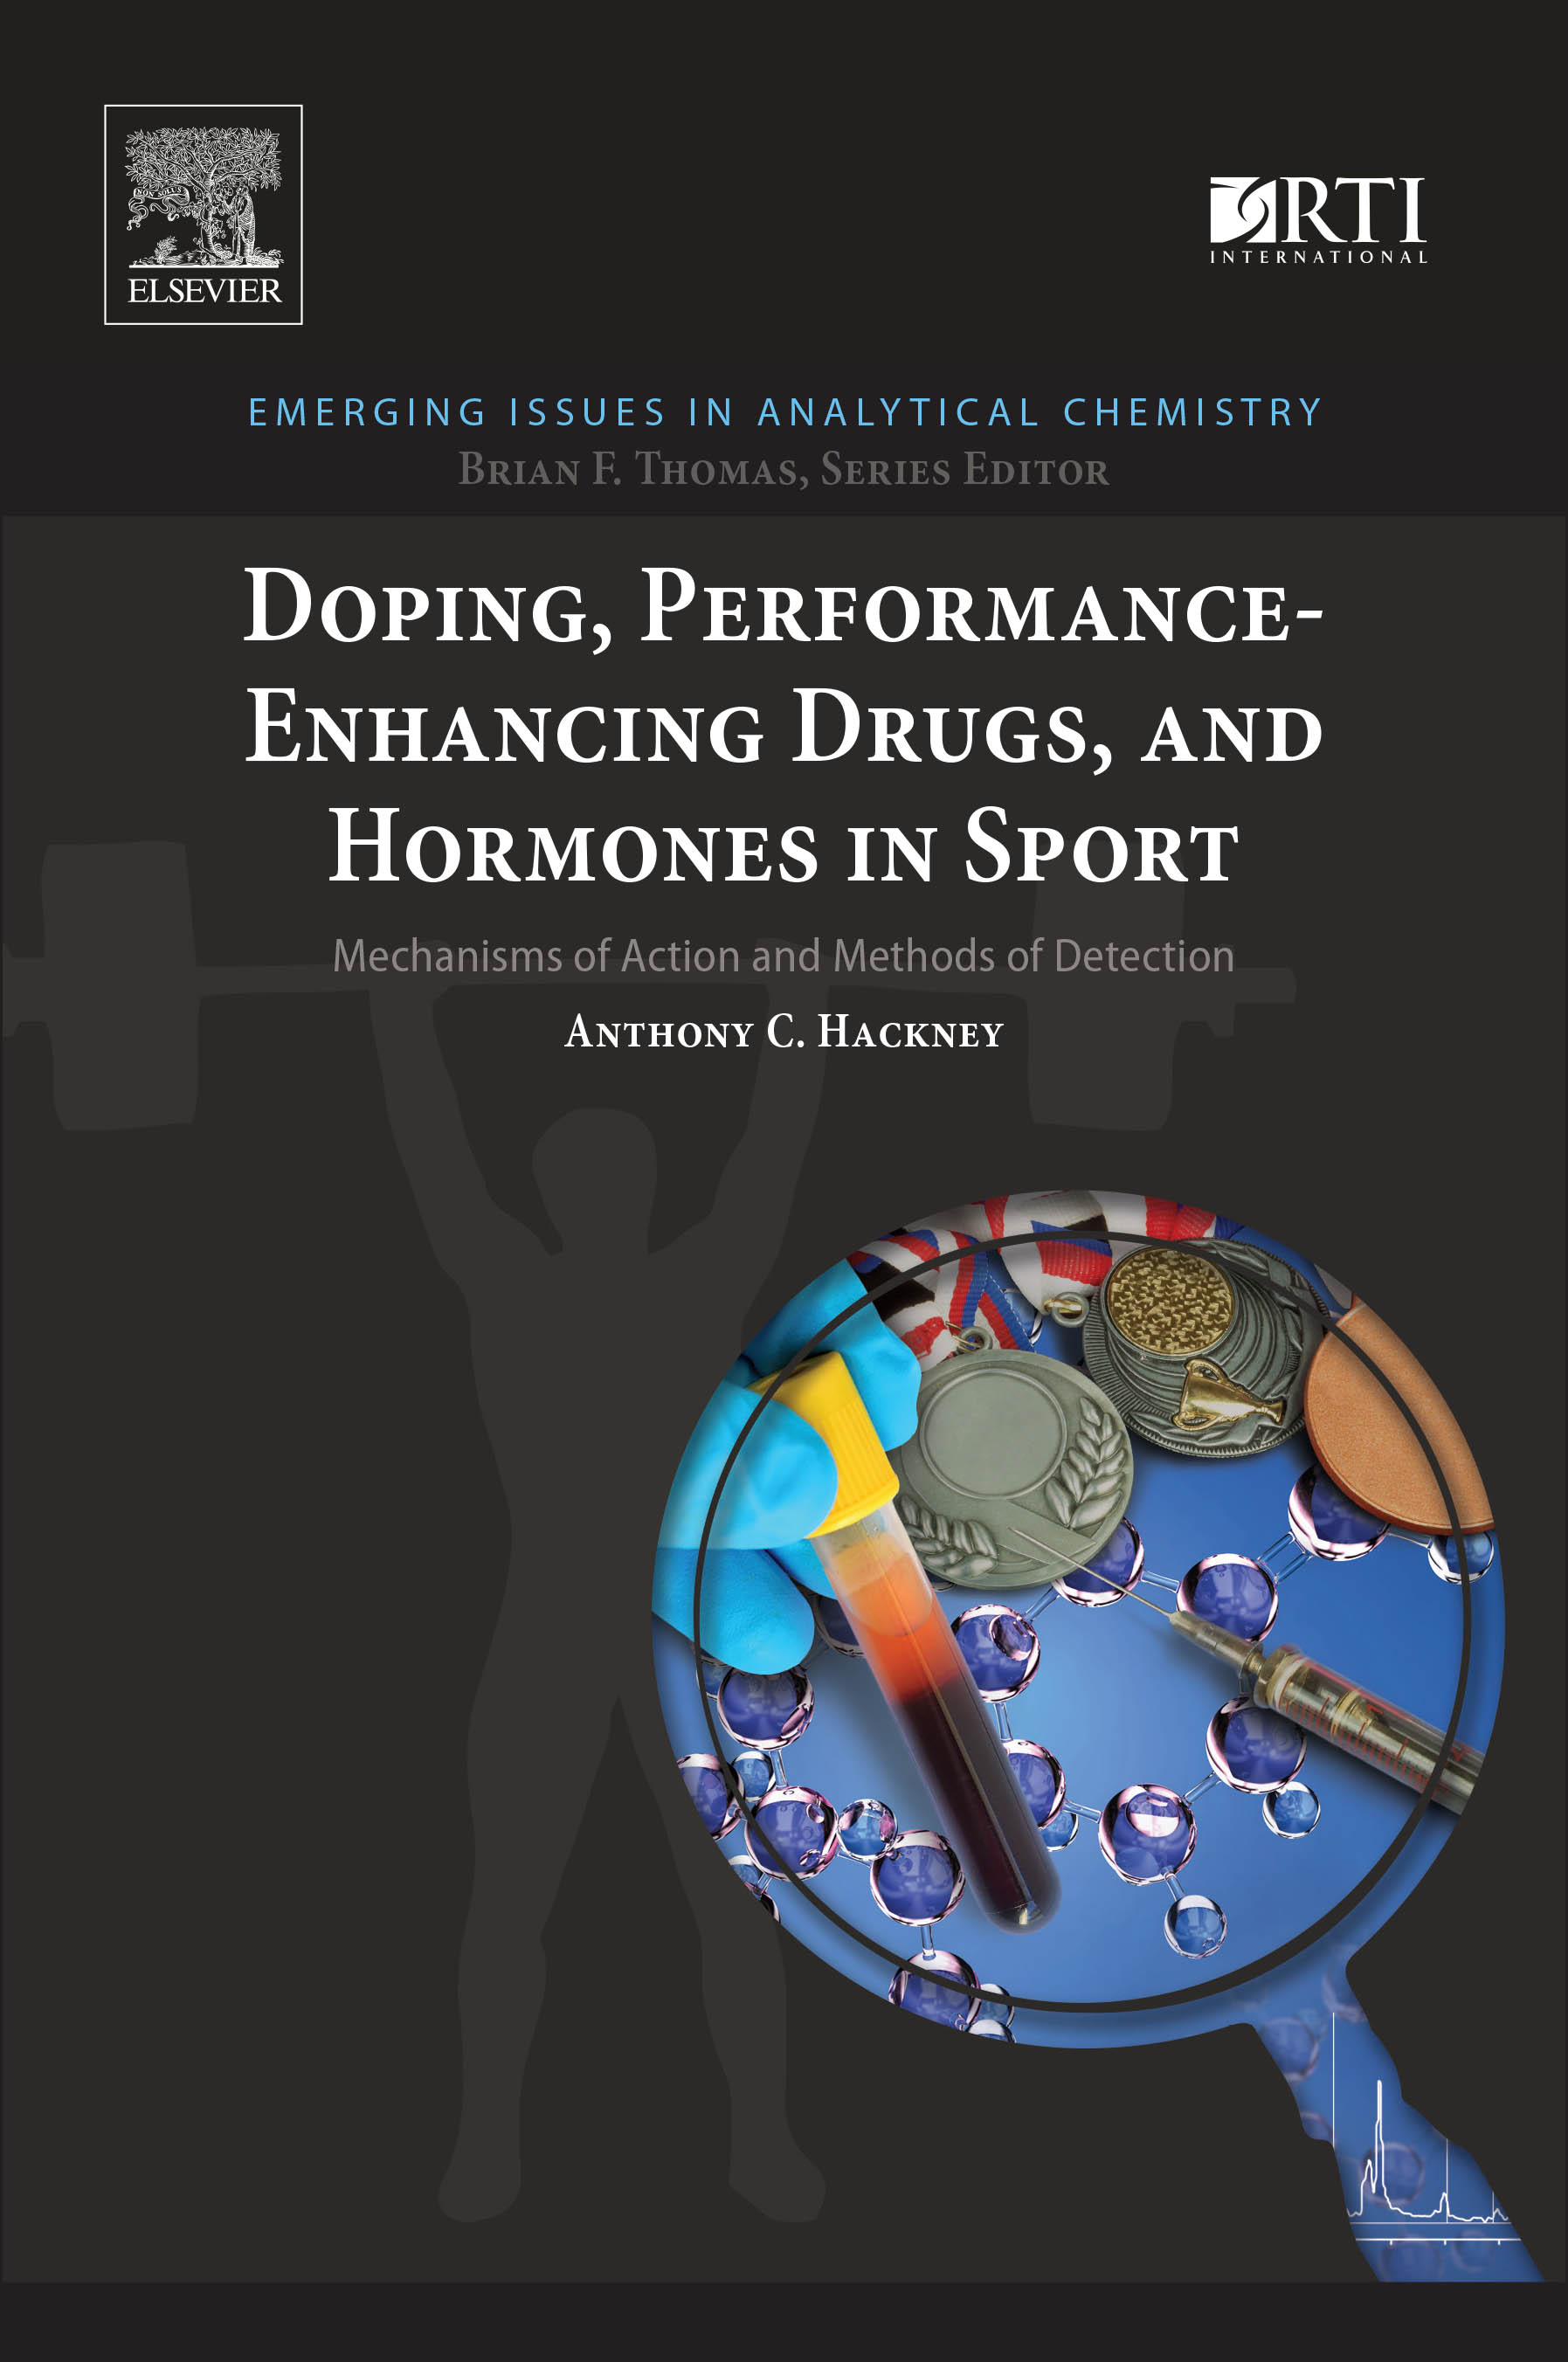 an analysis of the chemistry of performance enhancing drugs in athletes Read cnn's fast facts on performance-enhancing drugs in sports and learn more about professional athletes in connection with steroids, hgh and other peds.